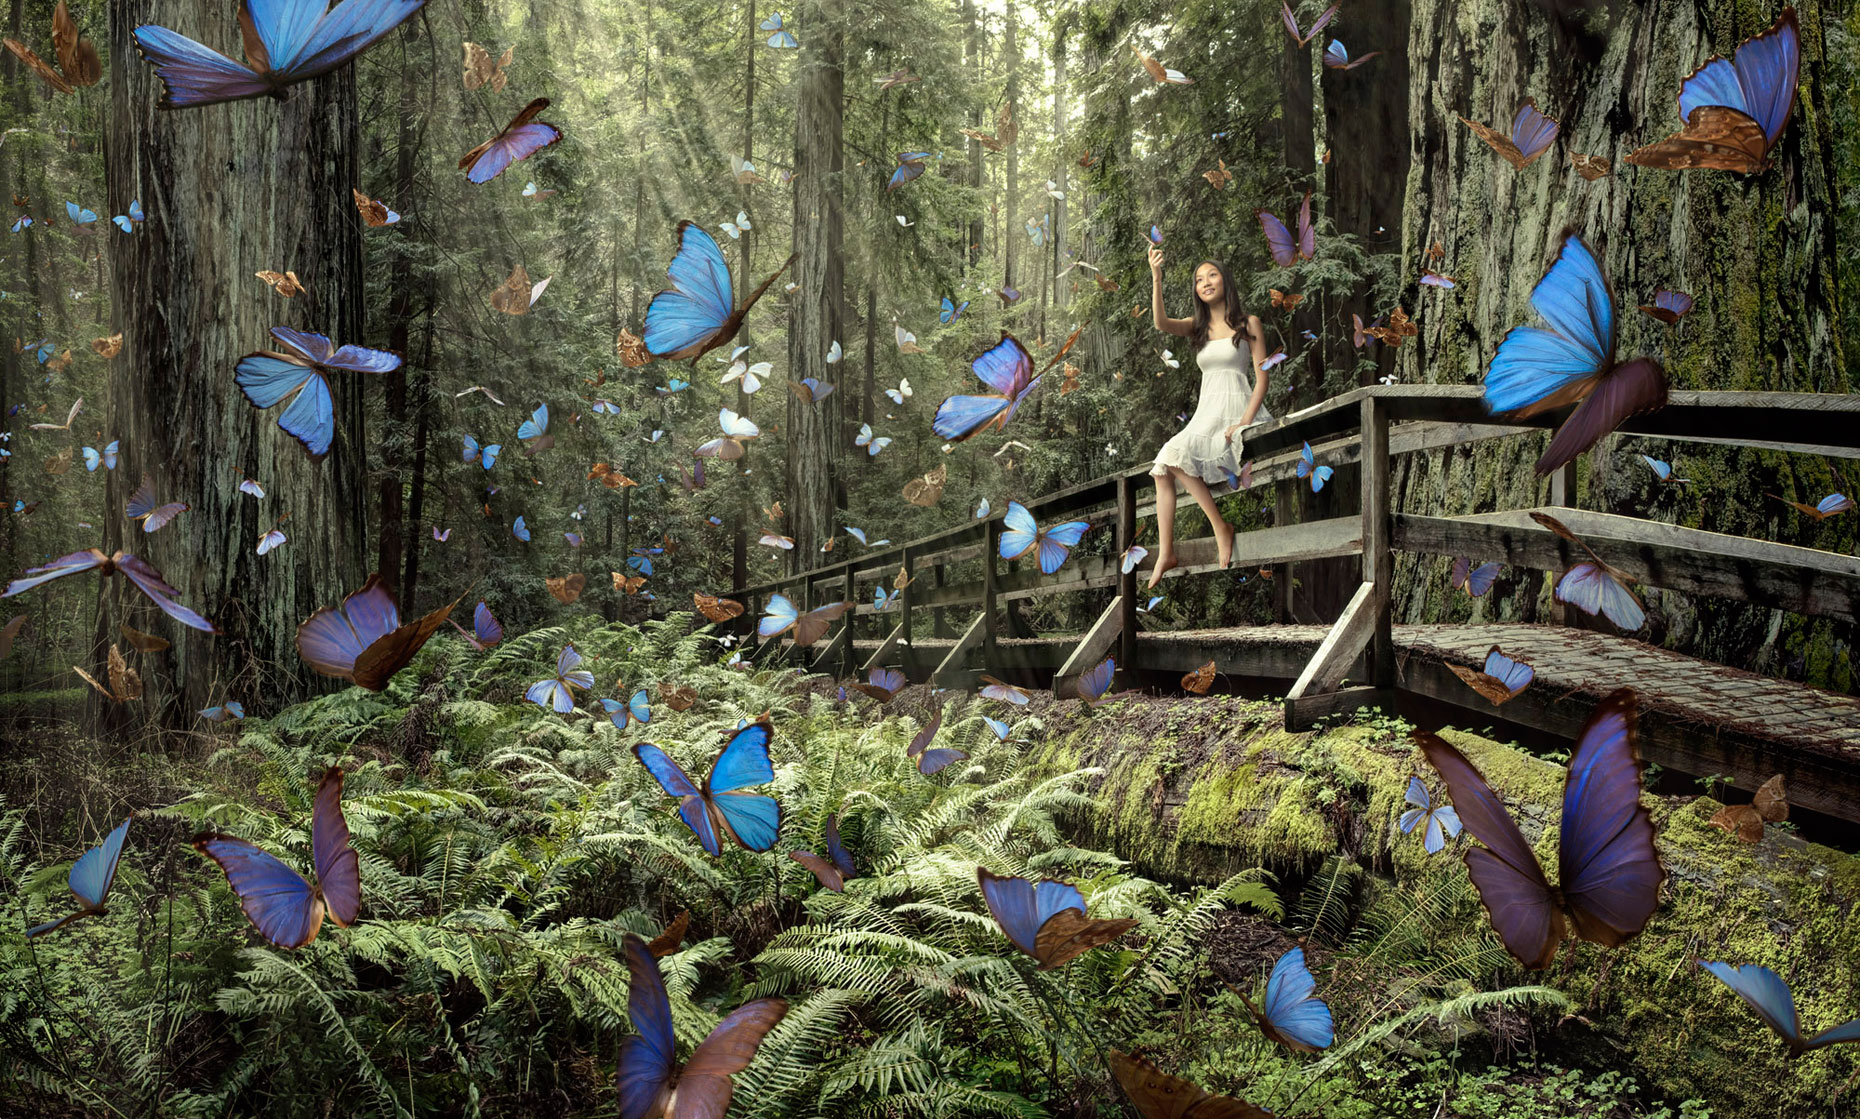 Butterfly Girl - Compositing adventure